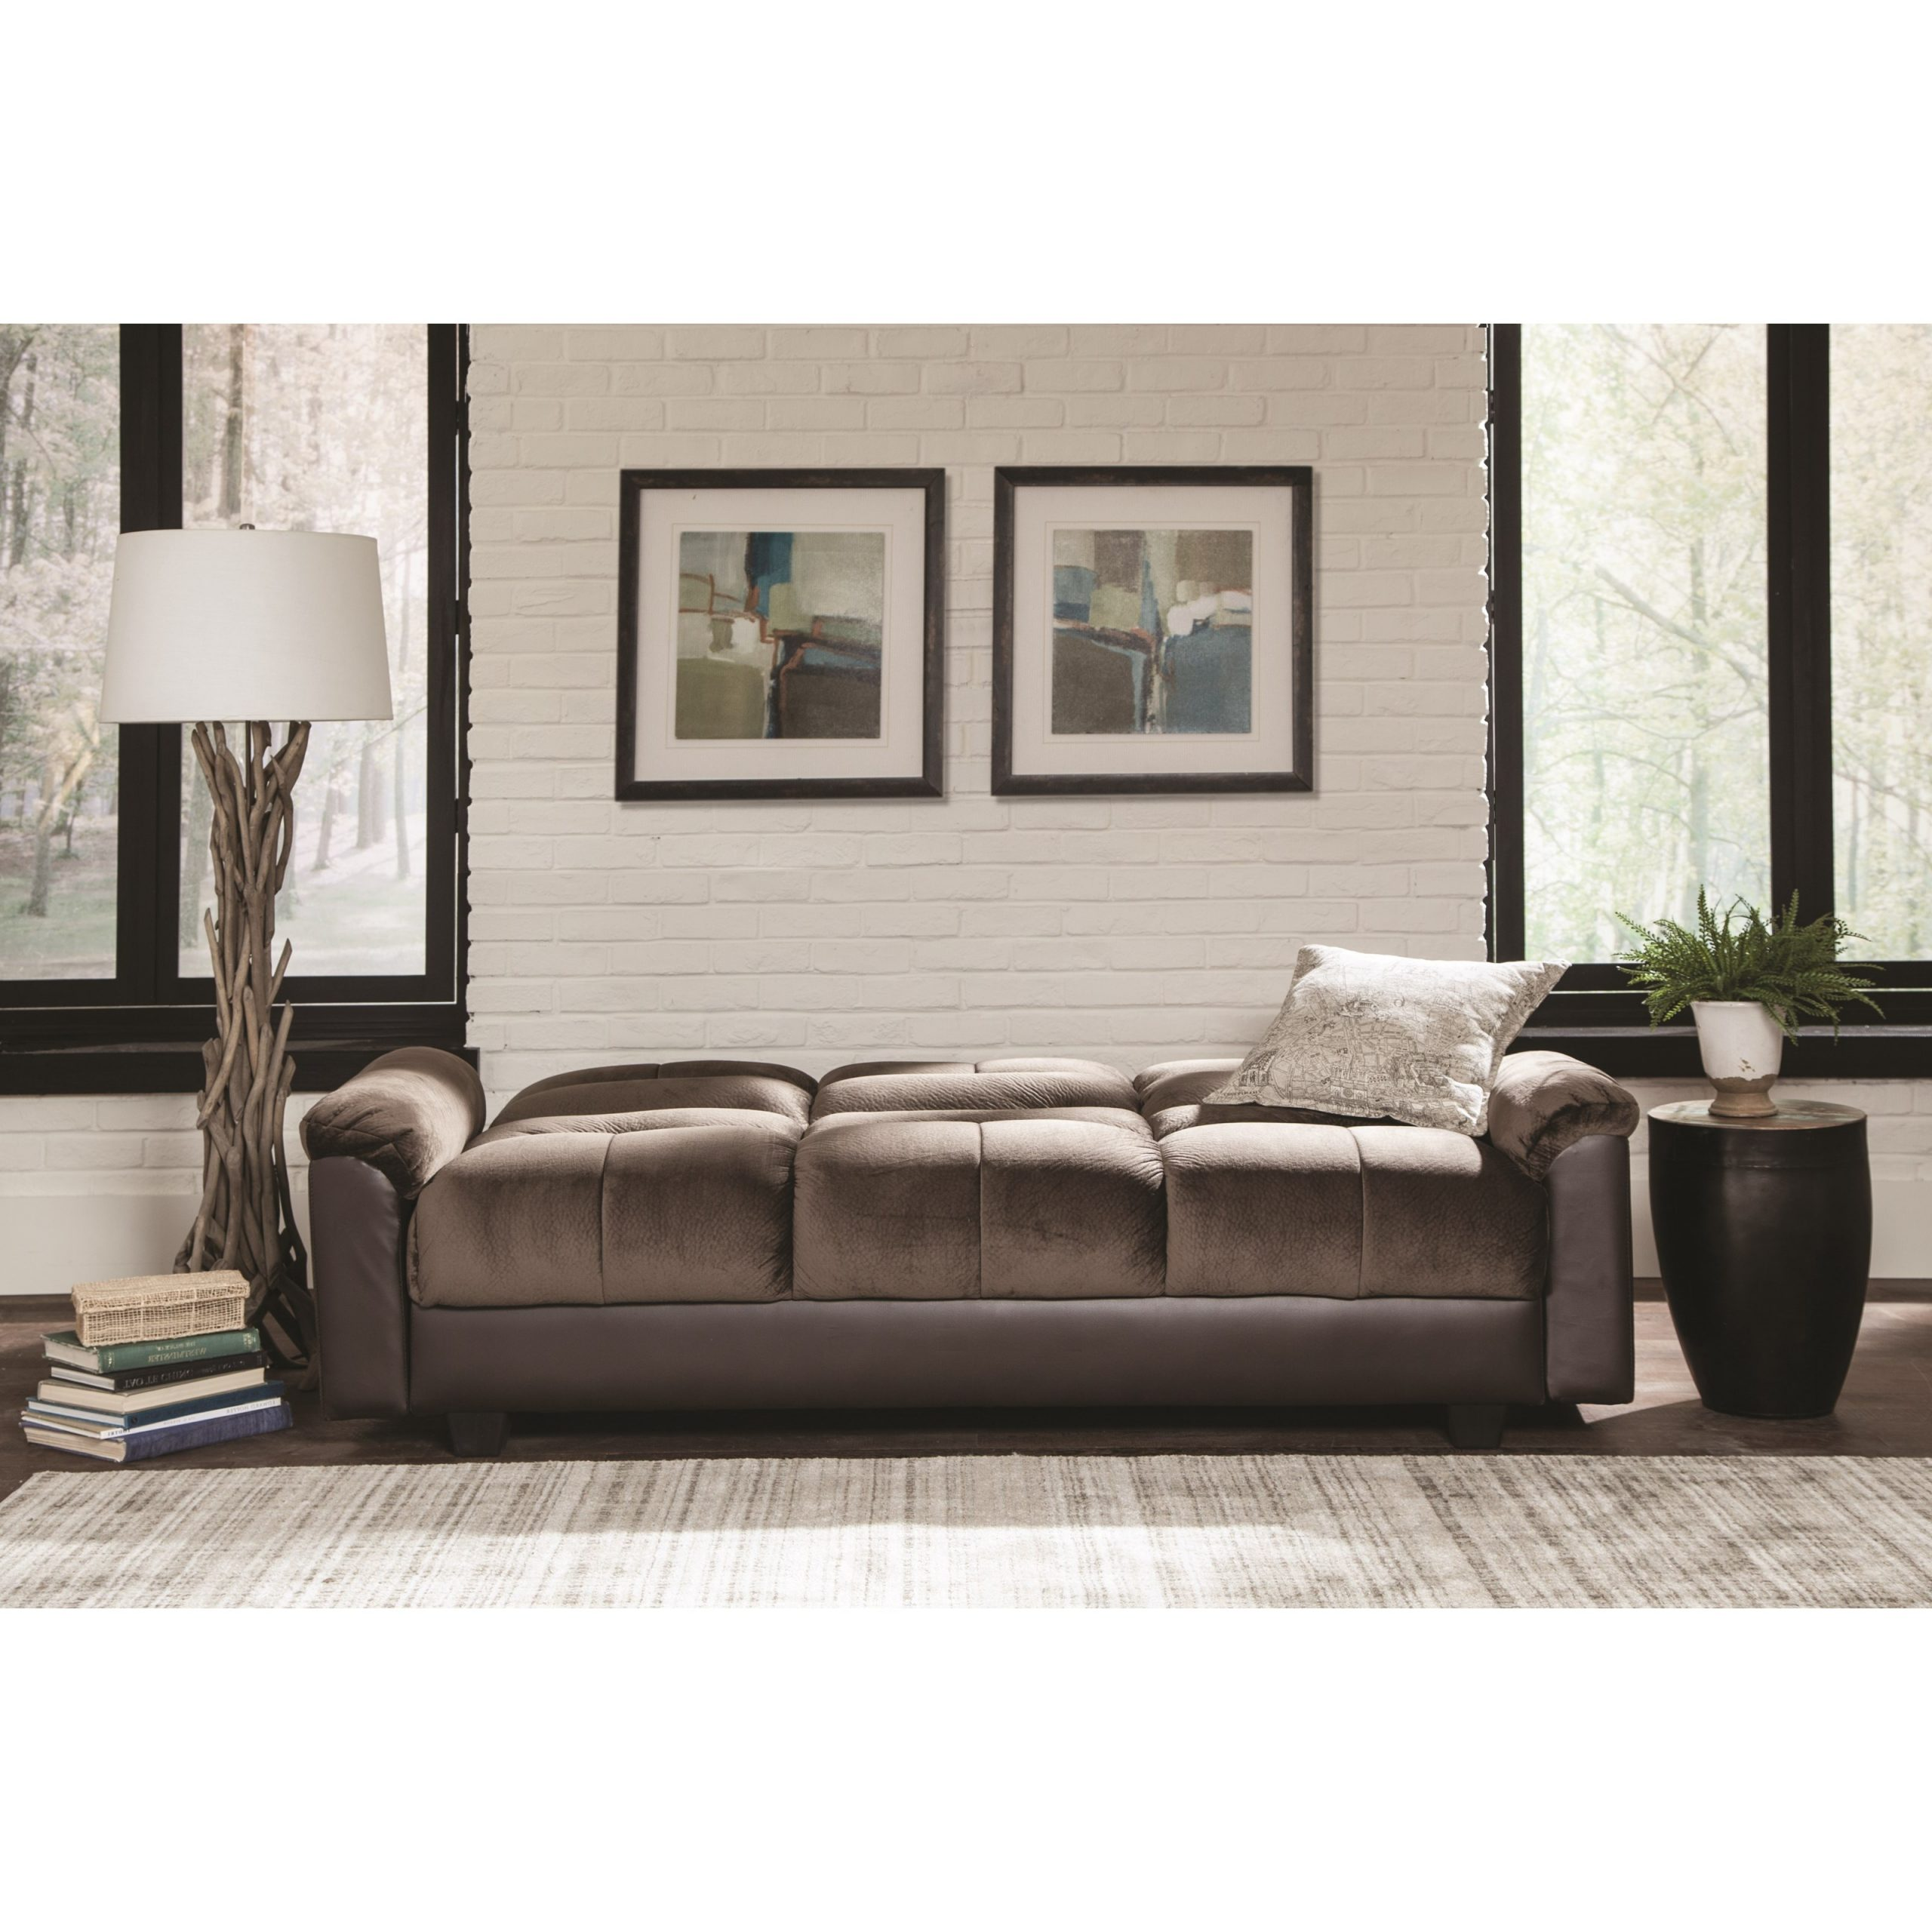 Latest Celine Sectional Futon Sofas With Storage Reclining Couch Inside Sofa Beds And Futons Two Tone Sofa Bed With Storage (View 14 of 25)